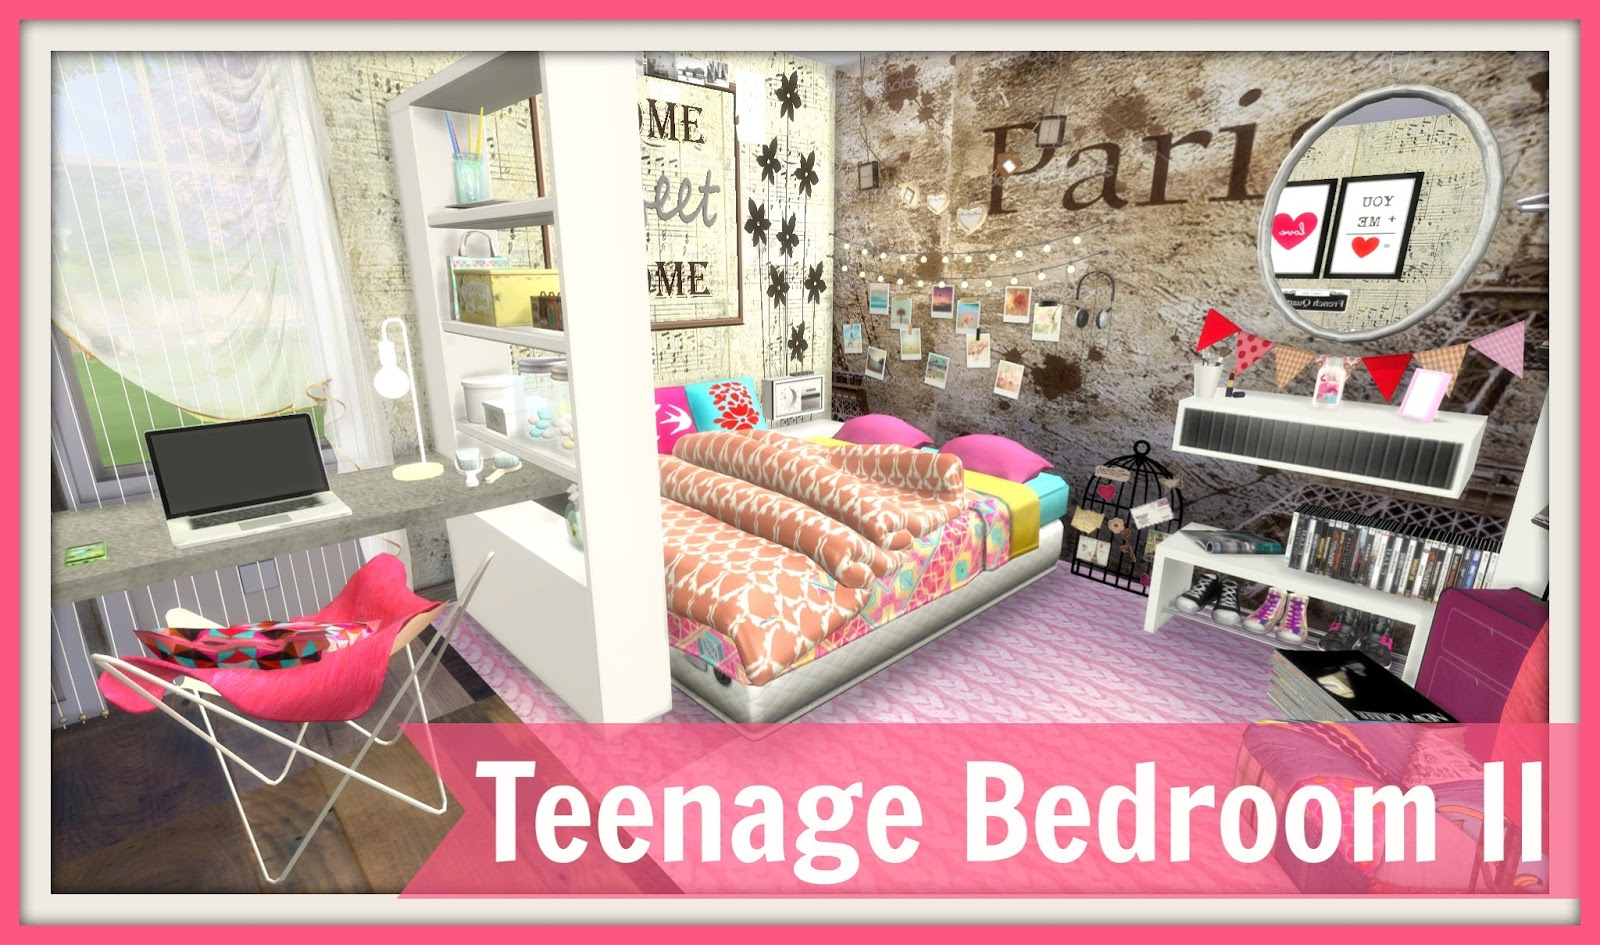 Sims 4 teenage bedroom ii dinha for Bedroom designs sims 4